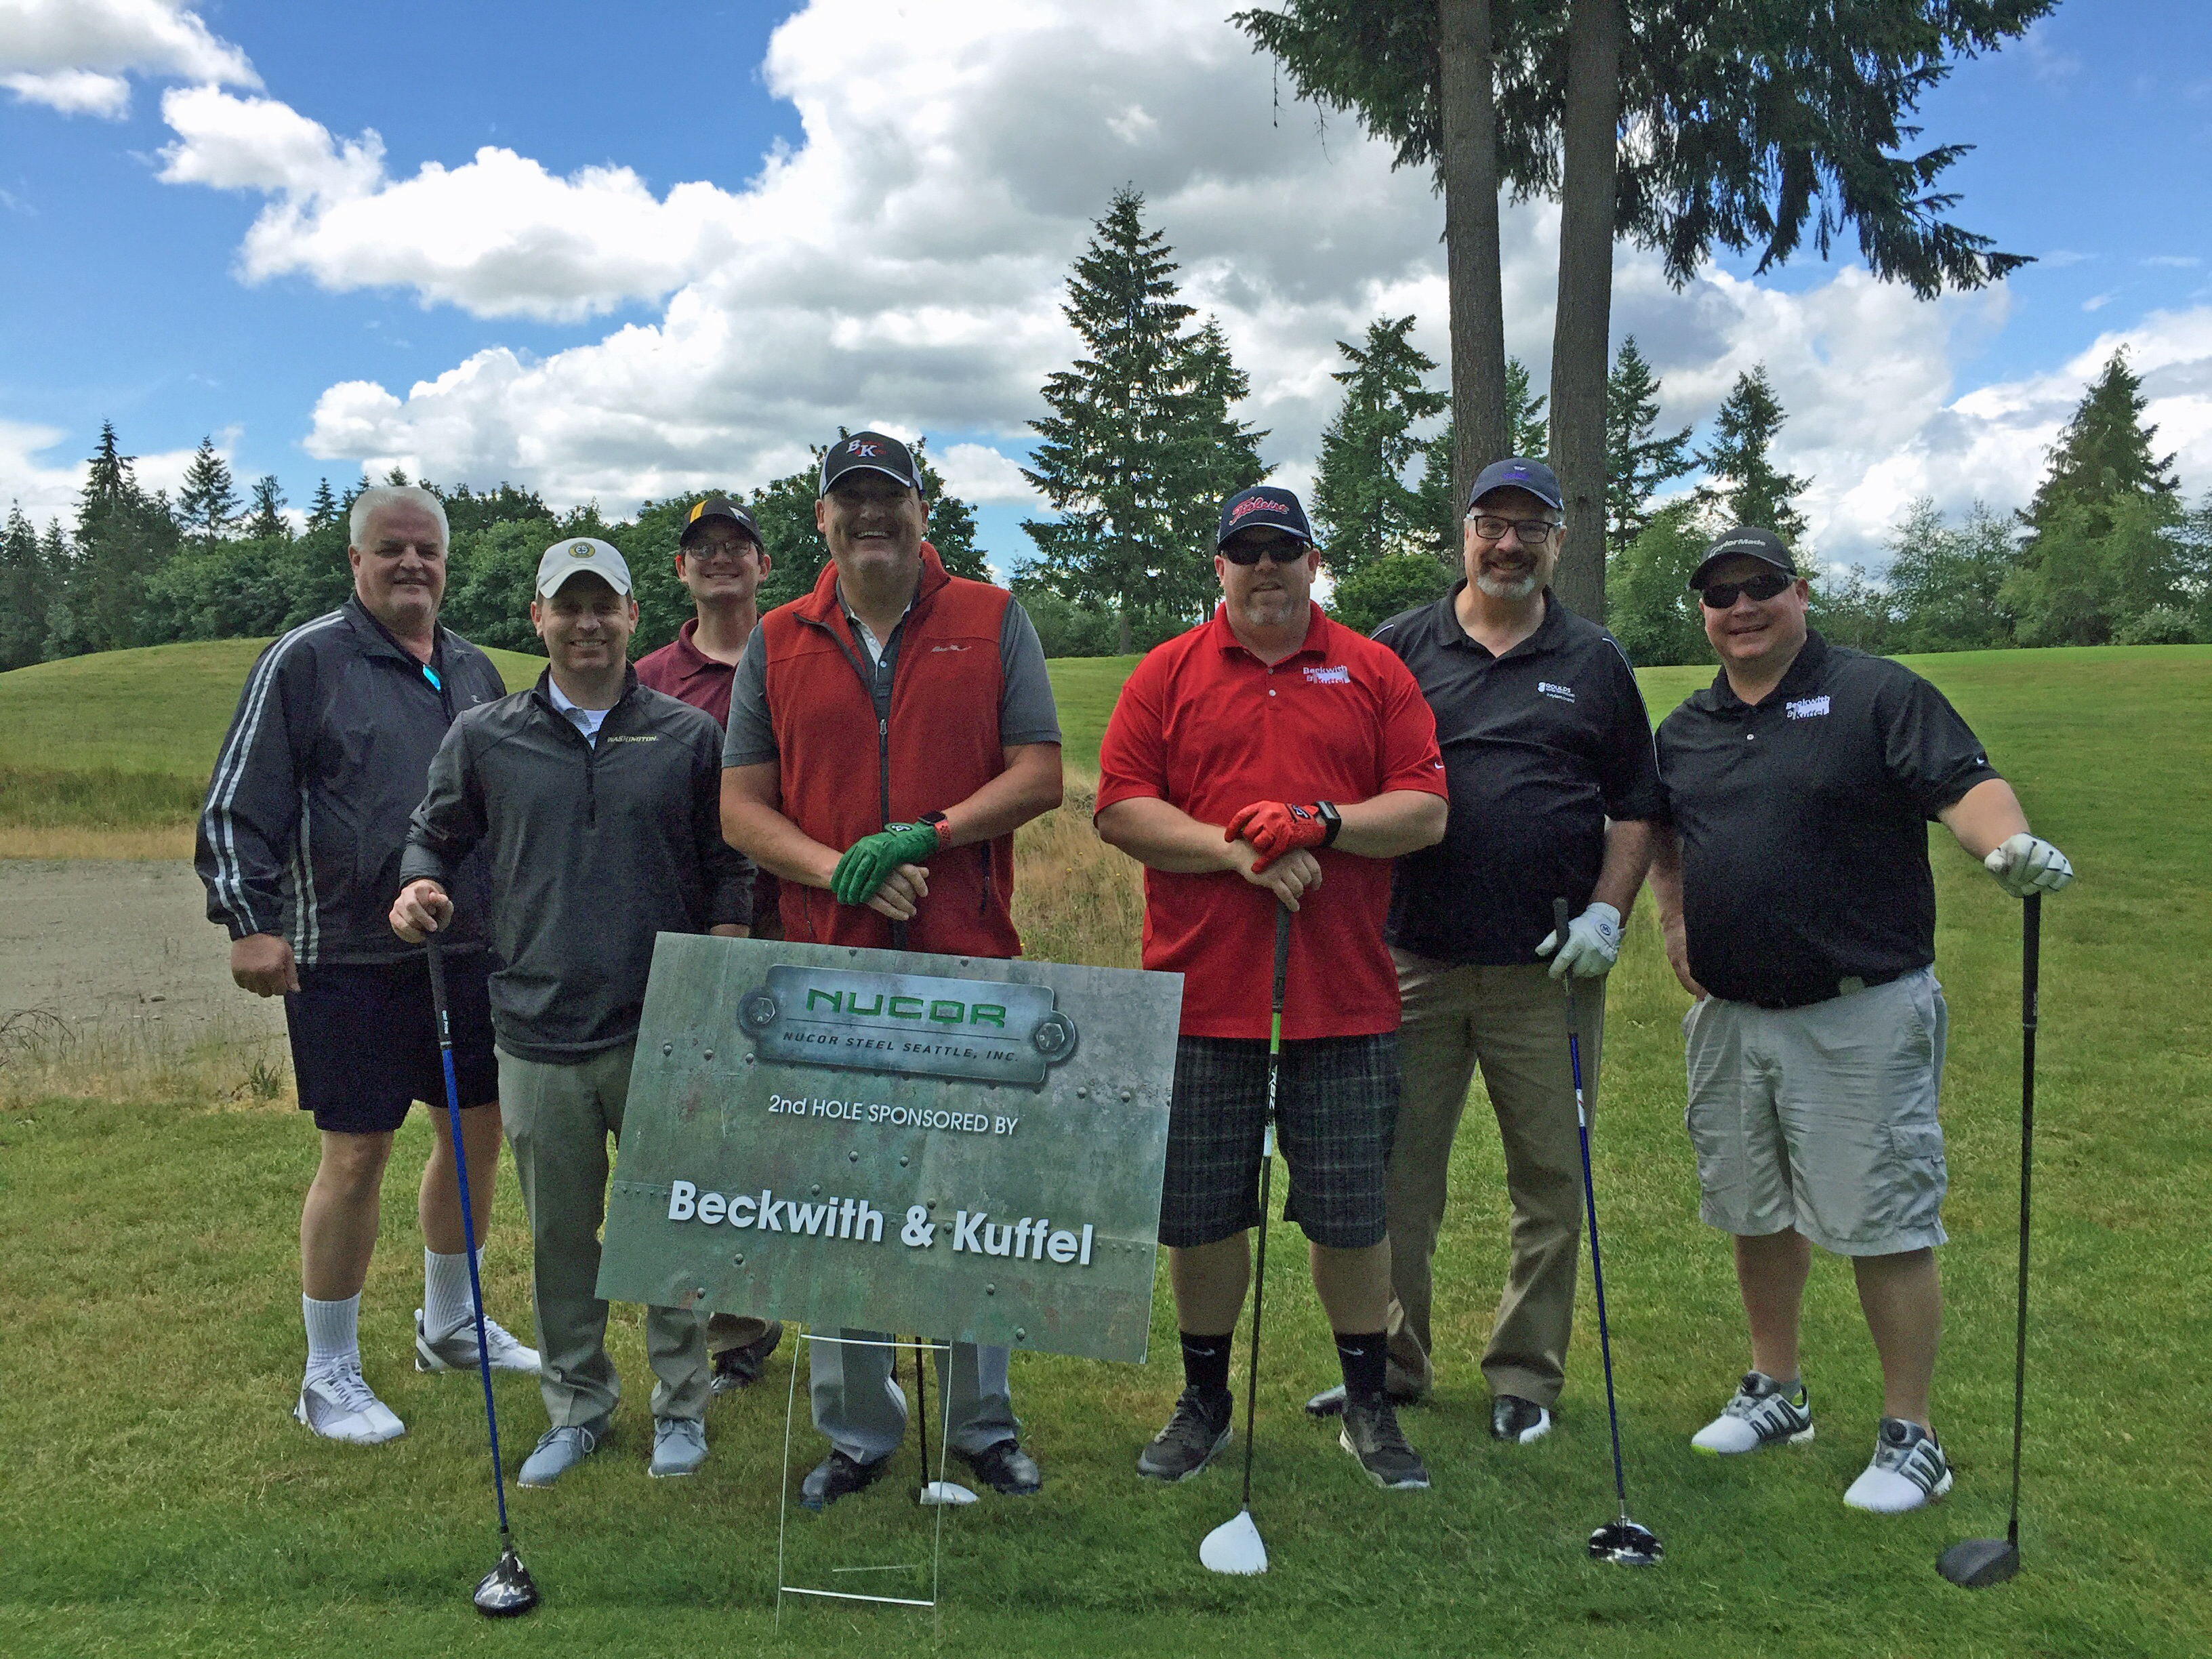 Nucor_Golf_Tournament_2018_copy.jpg